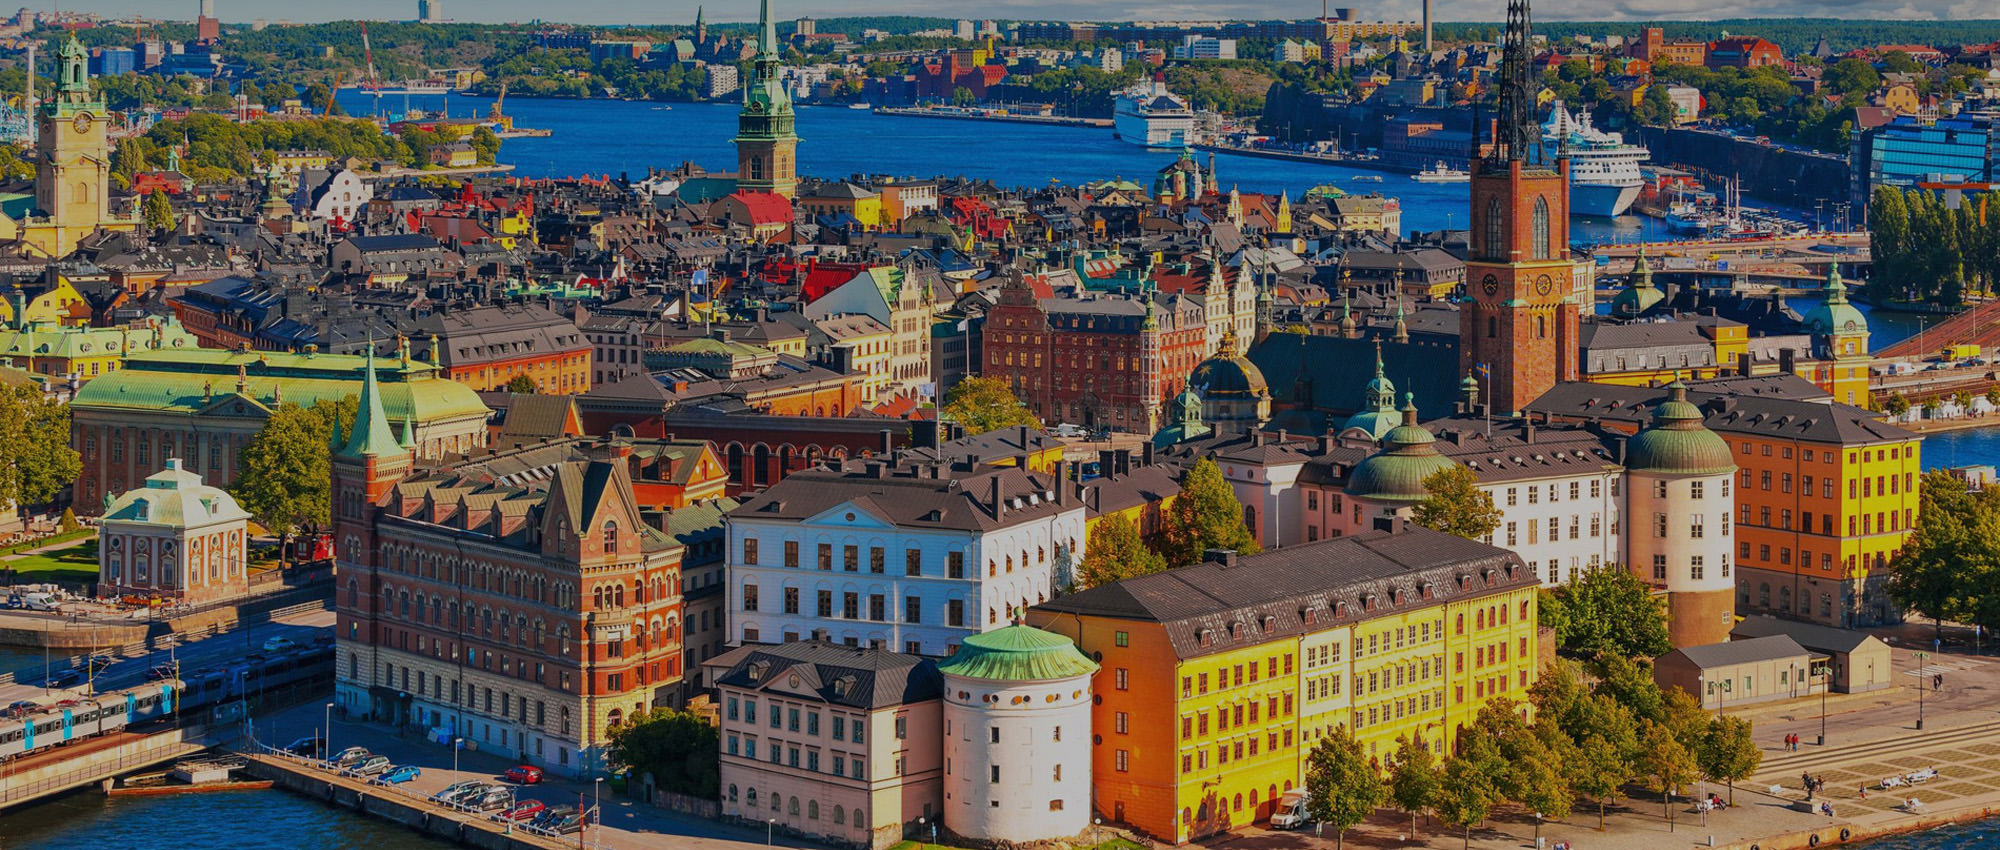 Transfer Money to Sweden